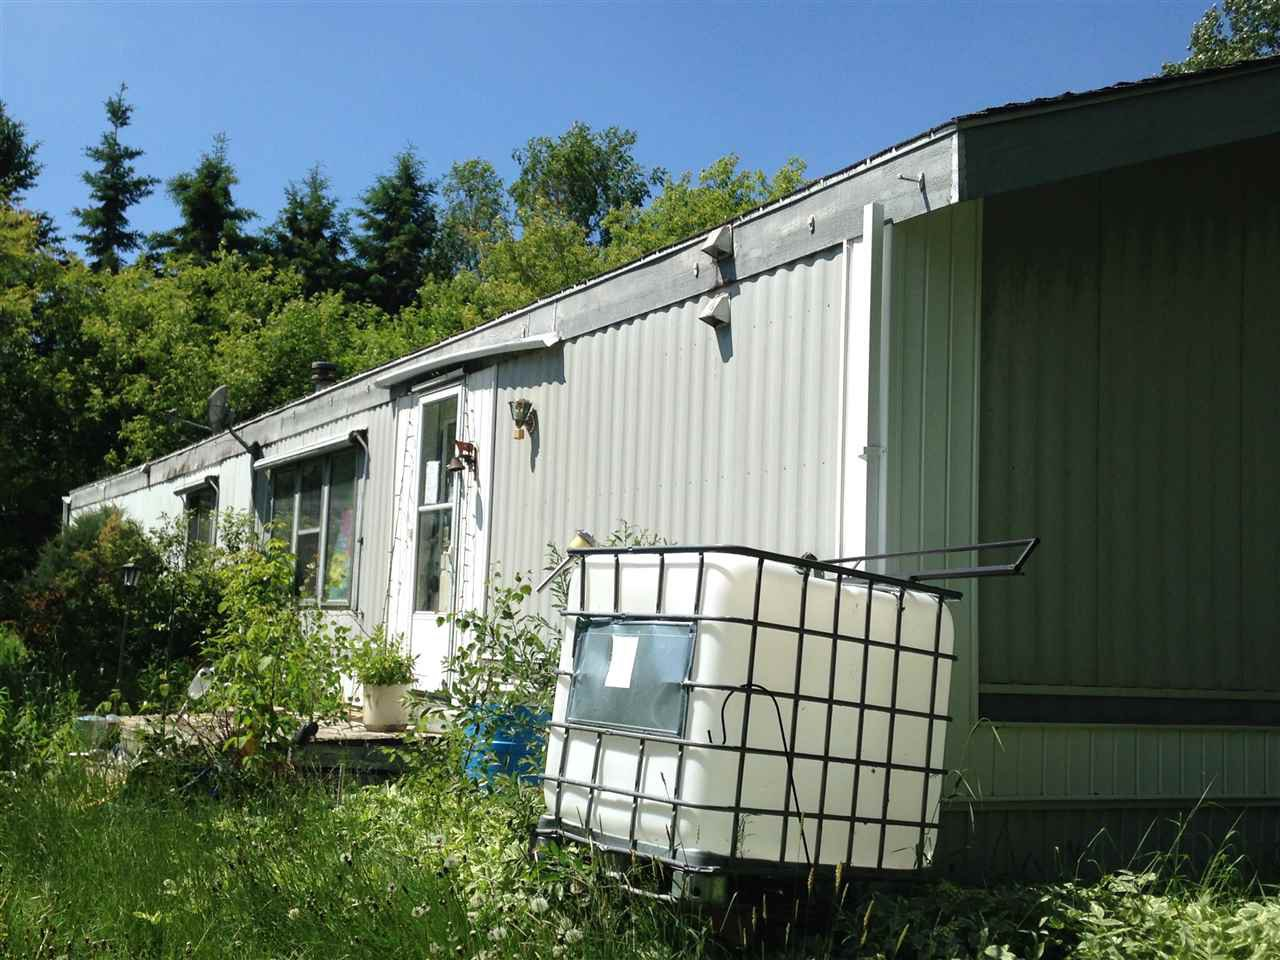 Main Photo: 4224 Hwy 633: Rural Lac Ste. Anne County Manufactured Home for sale : MLS®# E4176553